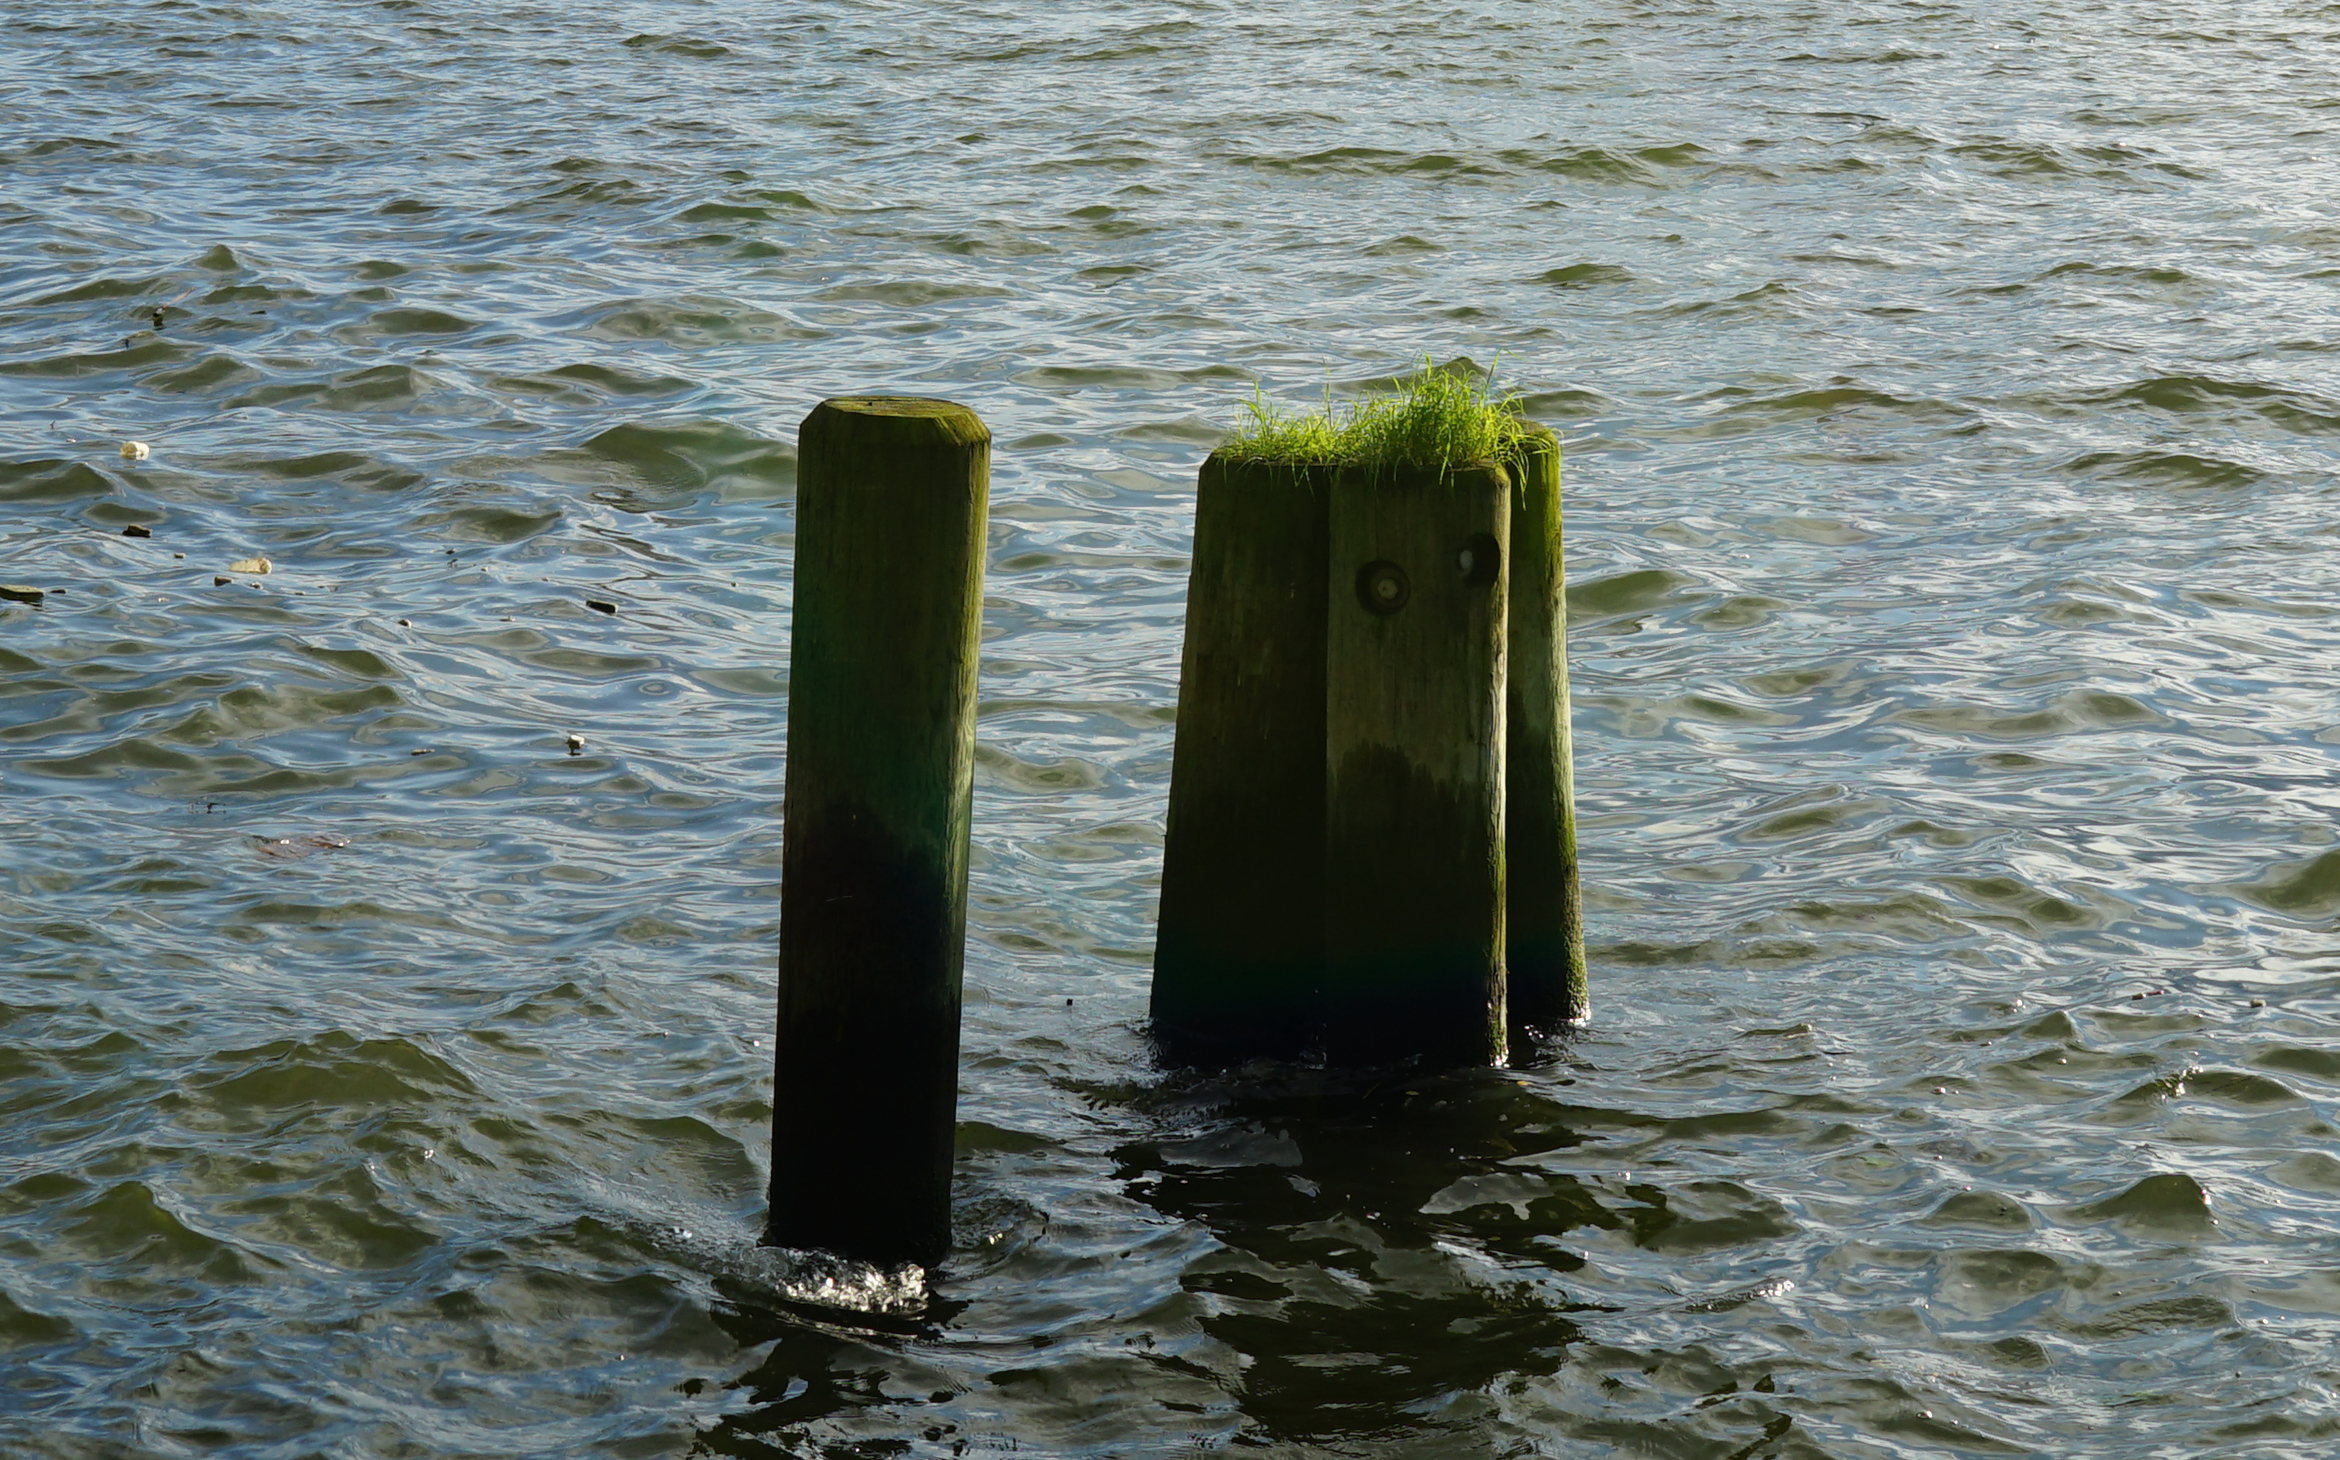 South Cove piles with grass zoom